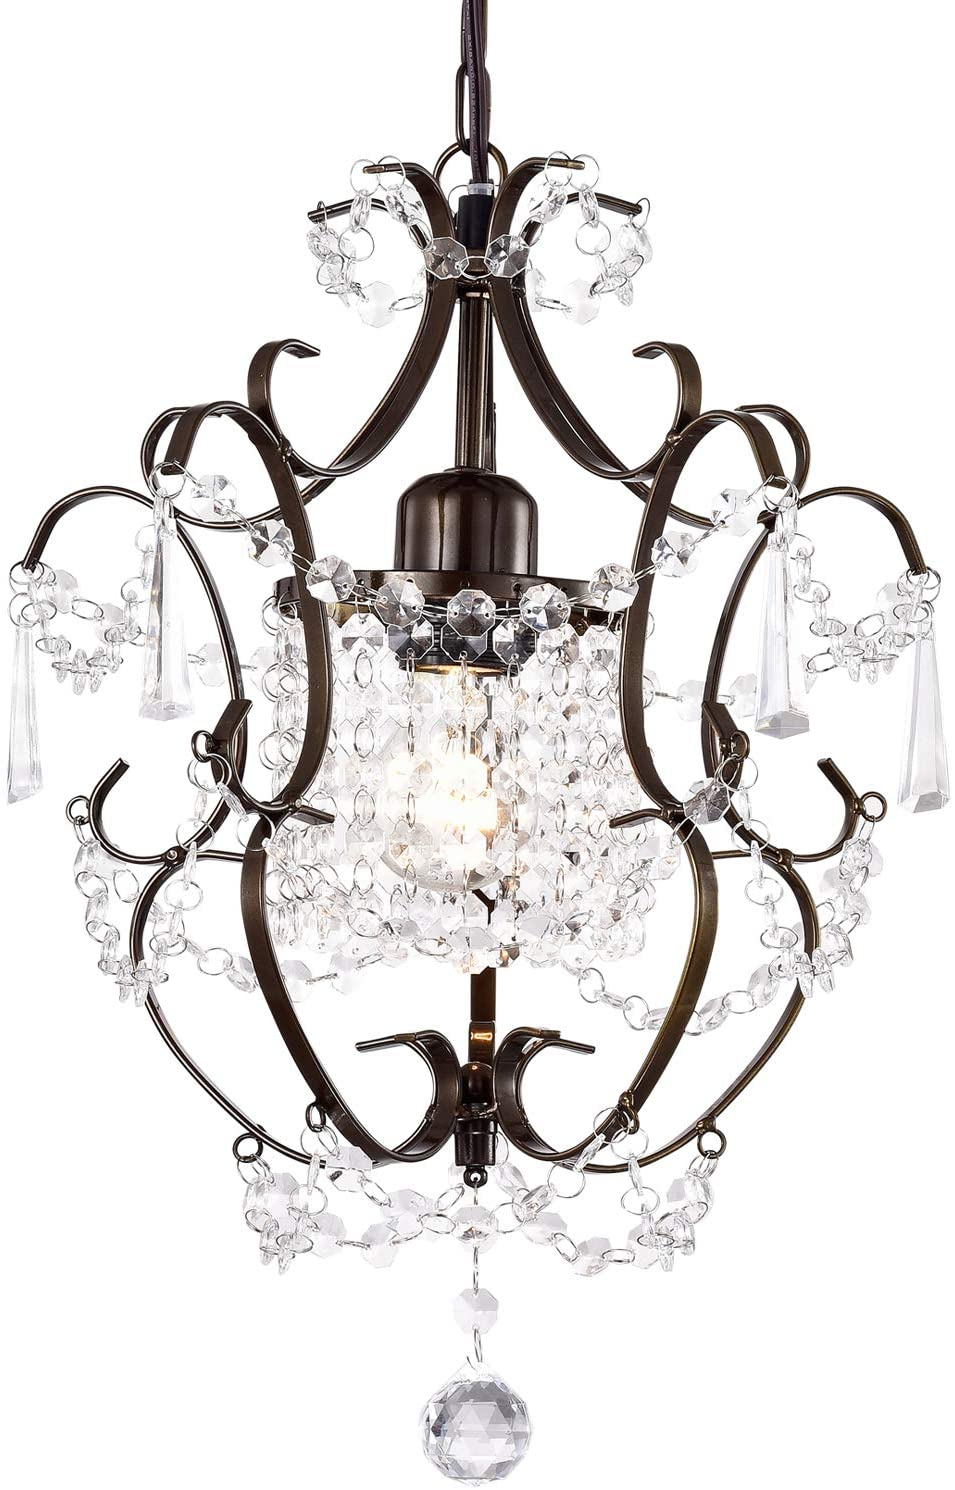 Bronze Chandelier Mini Crystal Chandelier Lighting Small Chandelier 1 Light Chandeliers with Acrylic Crystals Farmhouse Pendant Light Fixture Easy Assembly